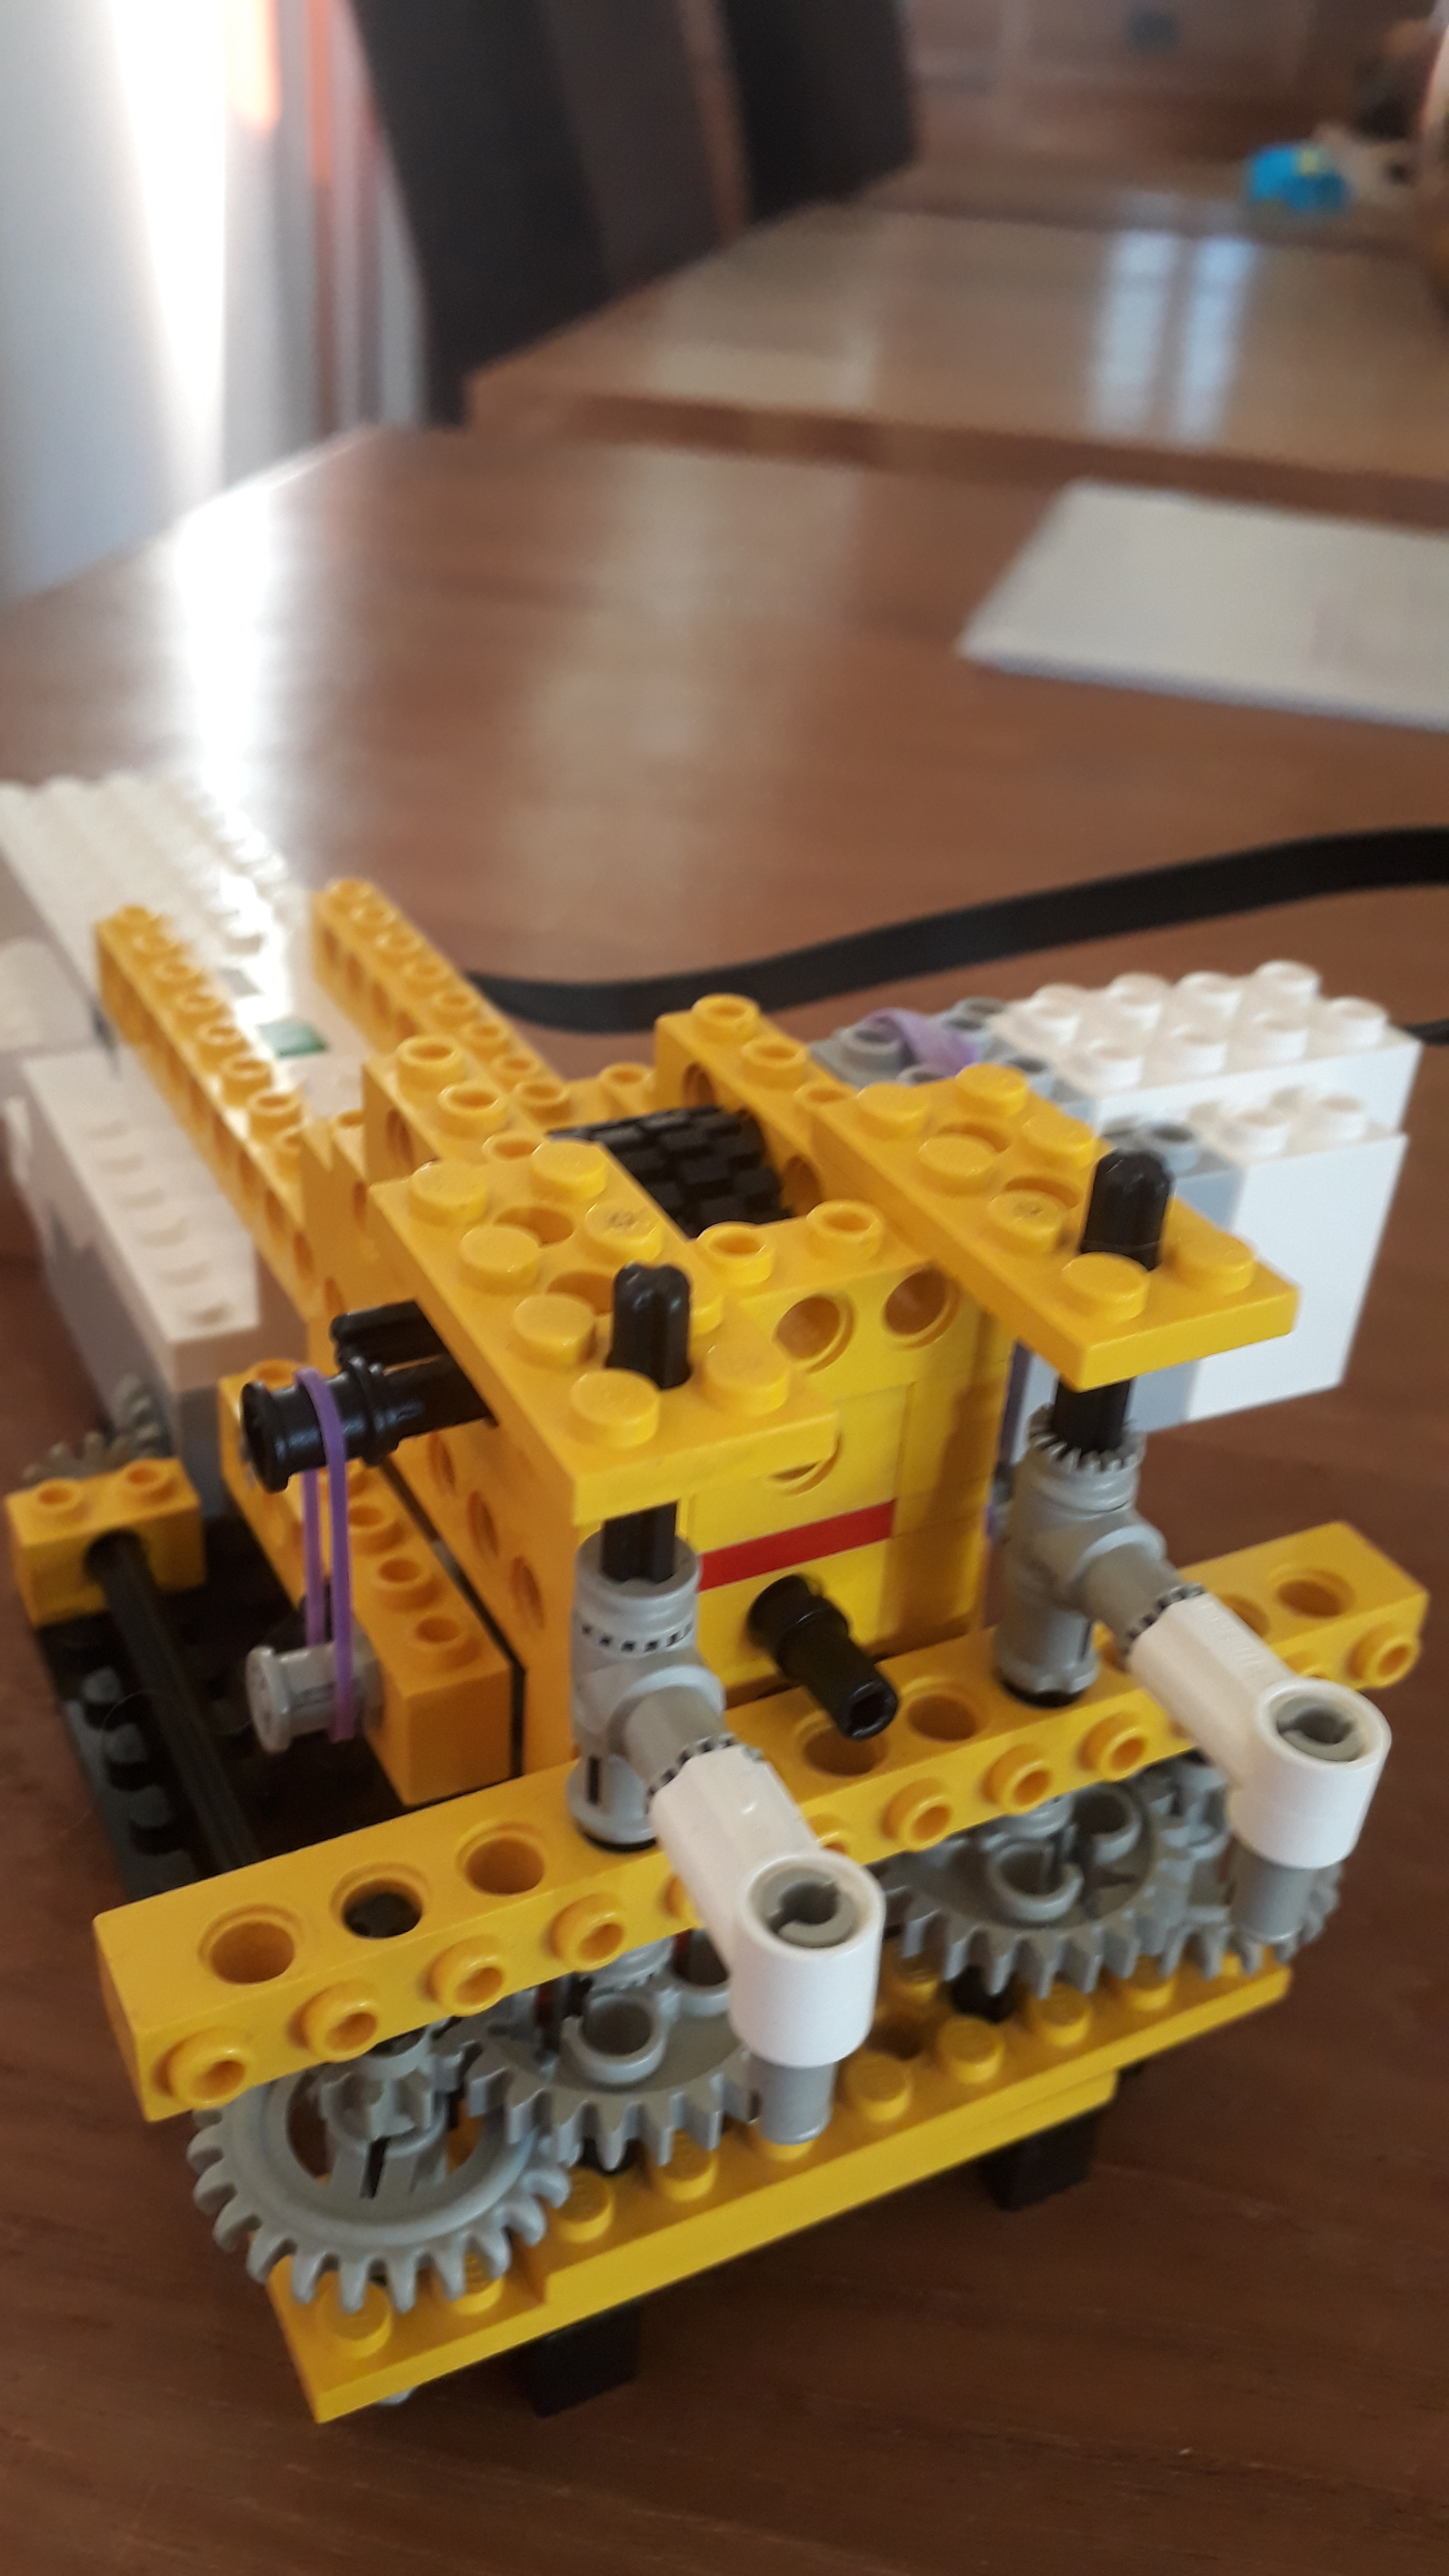 LEGO Boost Pipe Cleaner Bending Robot